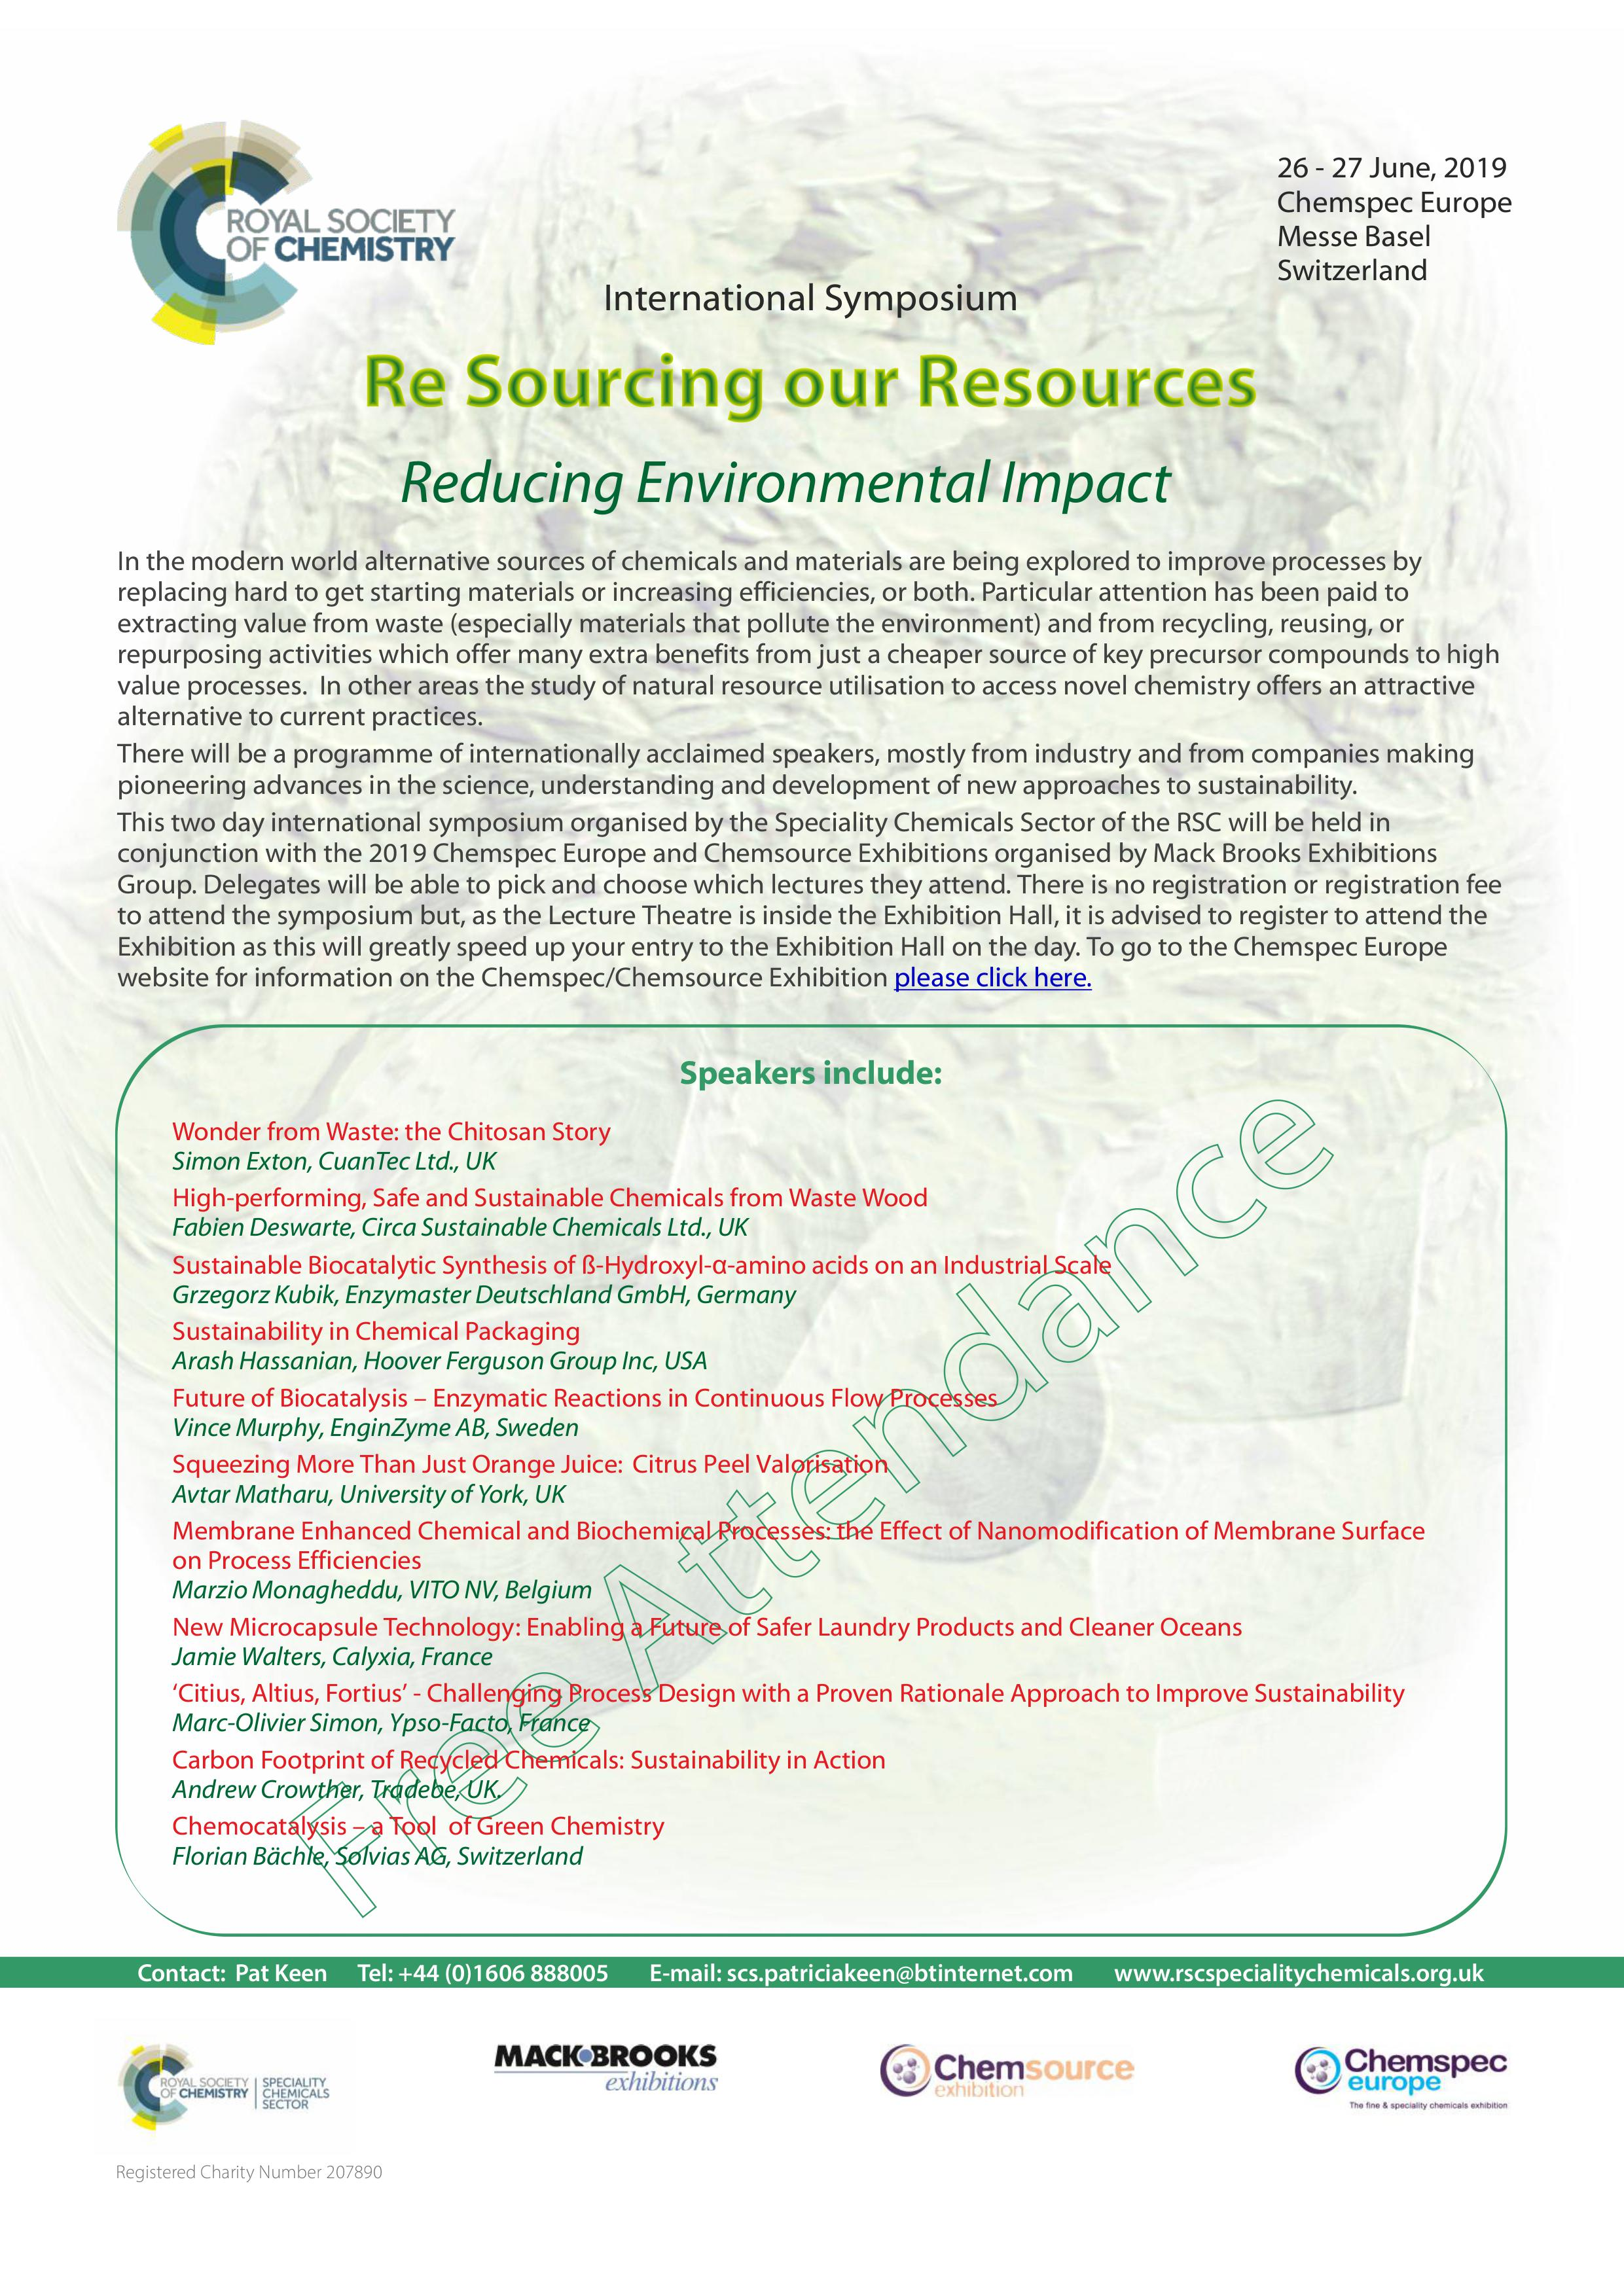 Royal Society of Chemistry Symposium 2019: Re sourcing Our